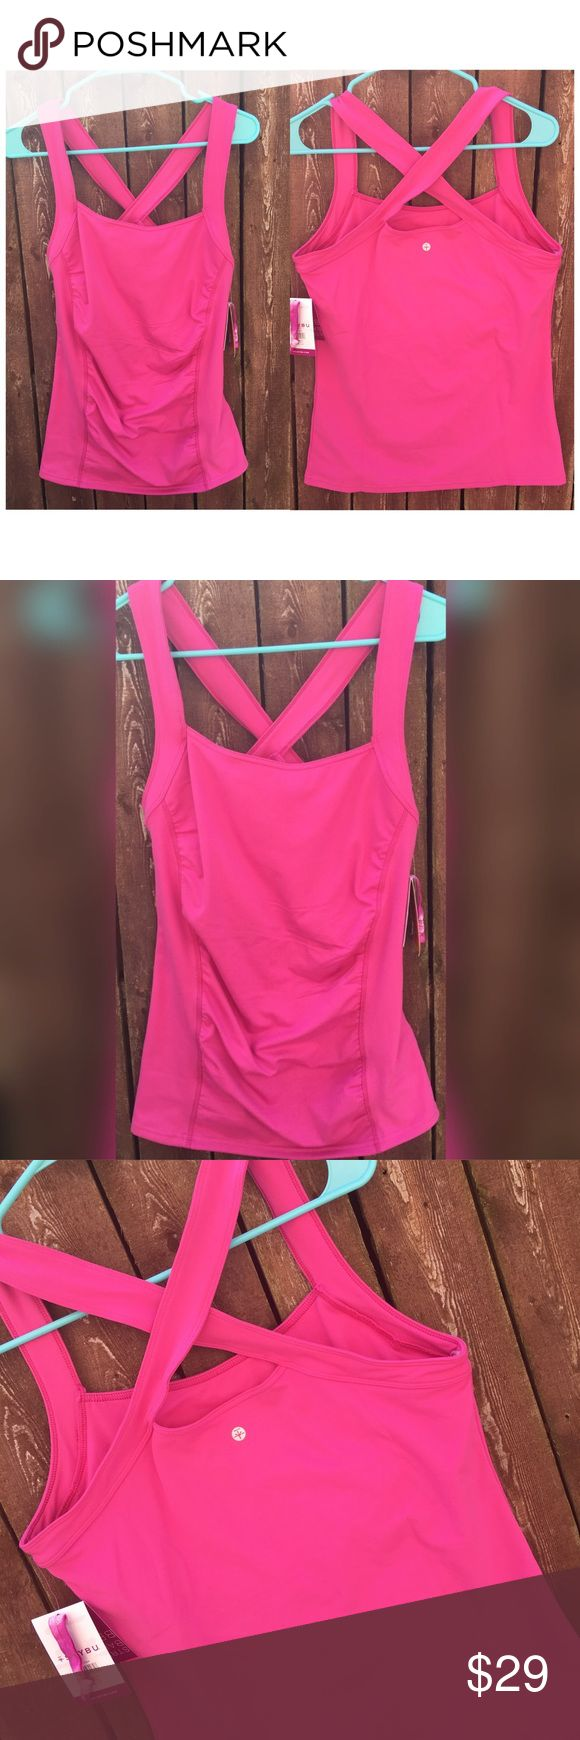 Soybu Alecia Tank Amaryllis 4022 Size Large Large Soybu Alecia Tank Amaryllis. Stretch reflex fabric. Quick dry, stretch, breathable, moisture wicking, UPF 50+ protection. 44% Conventional polyester, 44% recycled polyester, 12% spandex. New With Tags. Soybu Tops Tank Tops